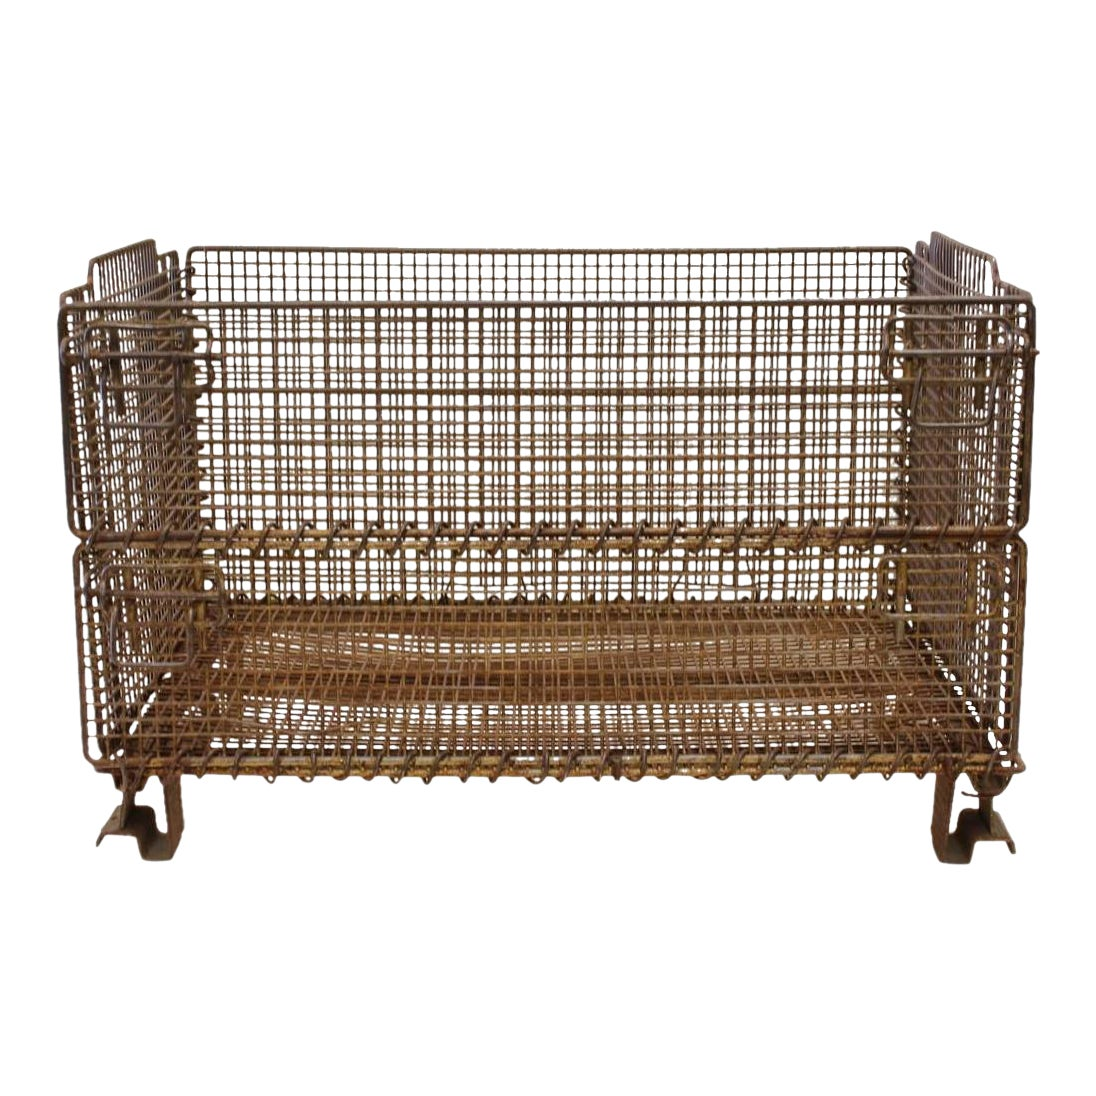 Collapsible Wire Basket   Original American Industrial Collapsible Wire Basket Chairish